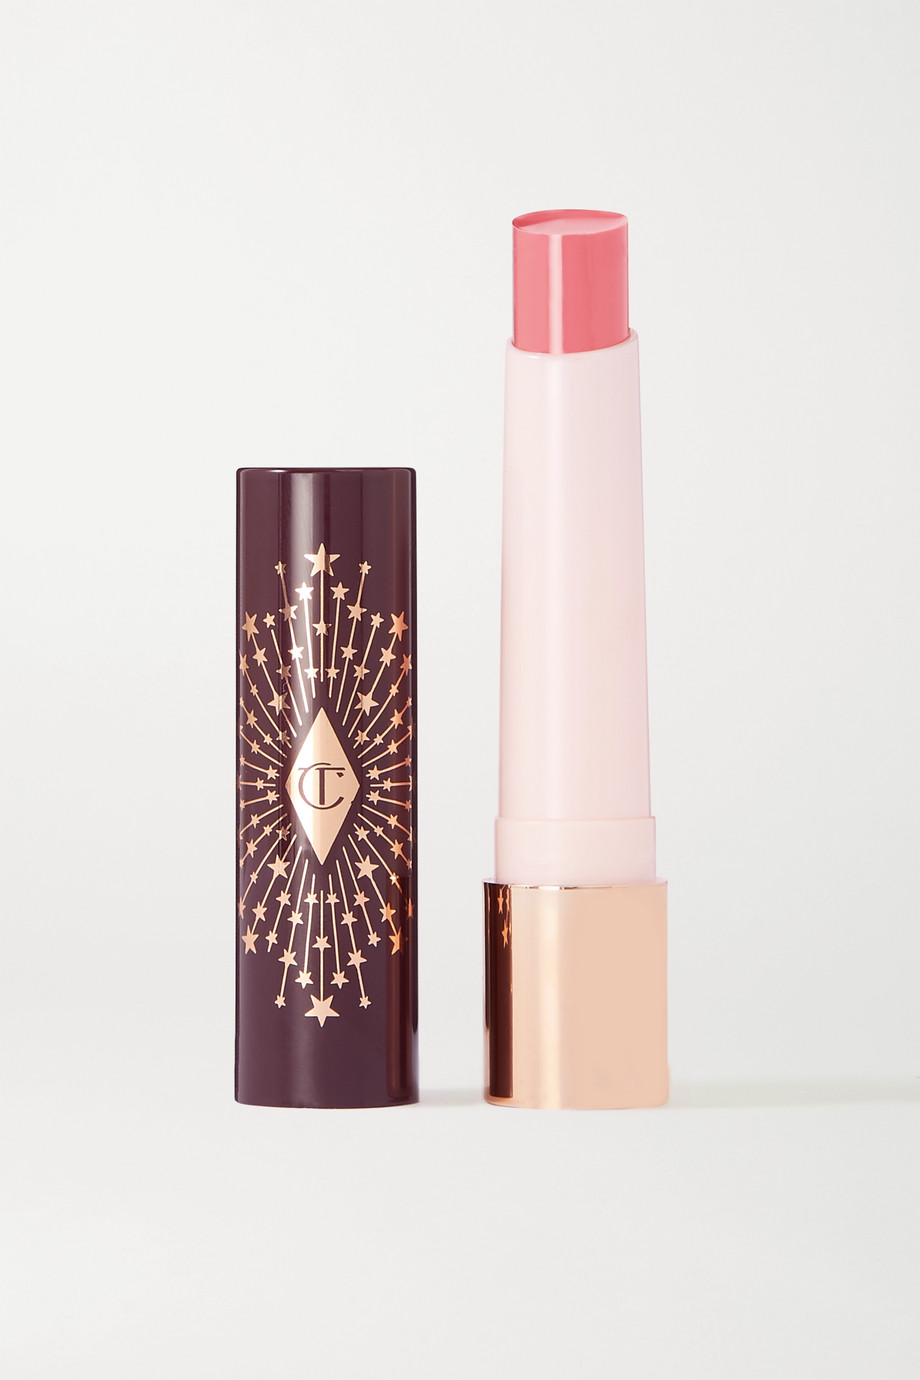 Charlotte Tilbury Baume à lèvres Hyaluronic Happikiss, Crystal Happikiss